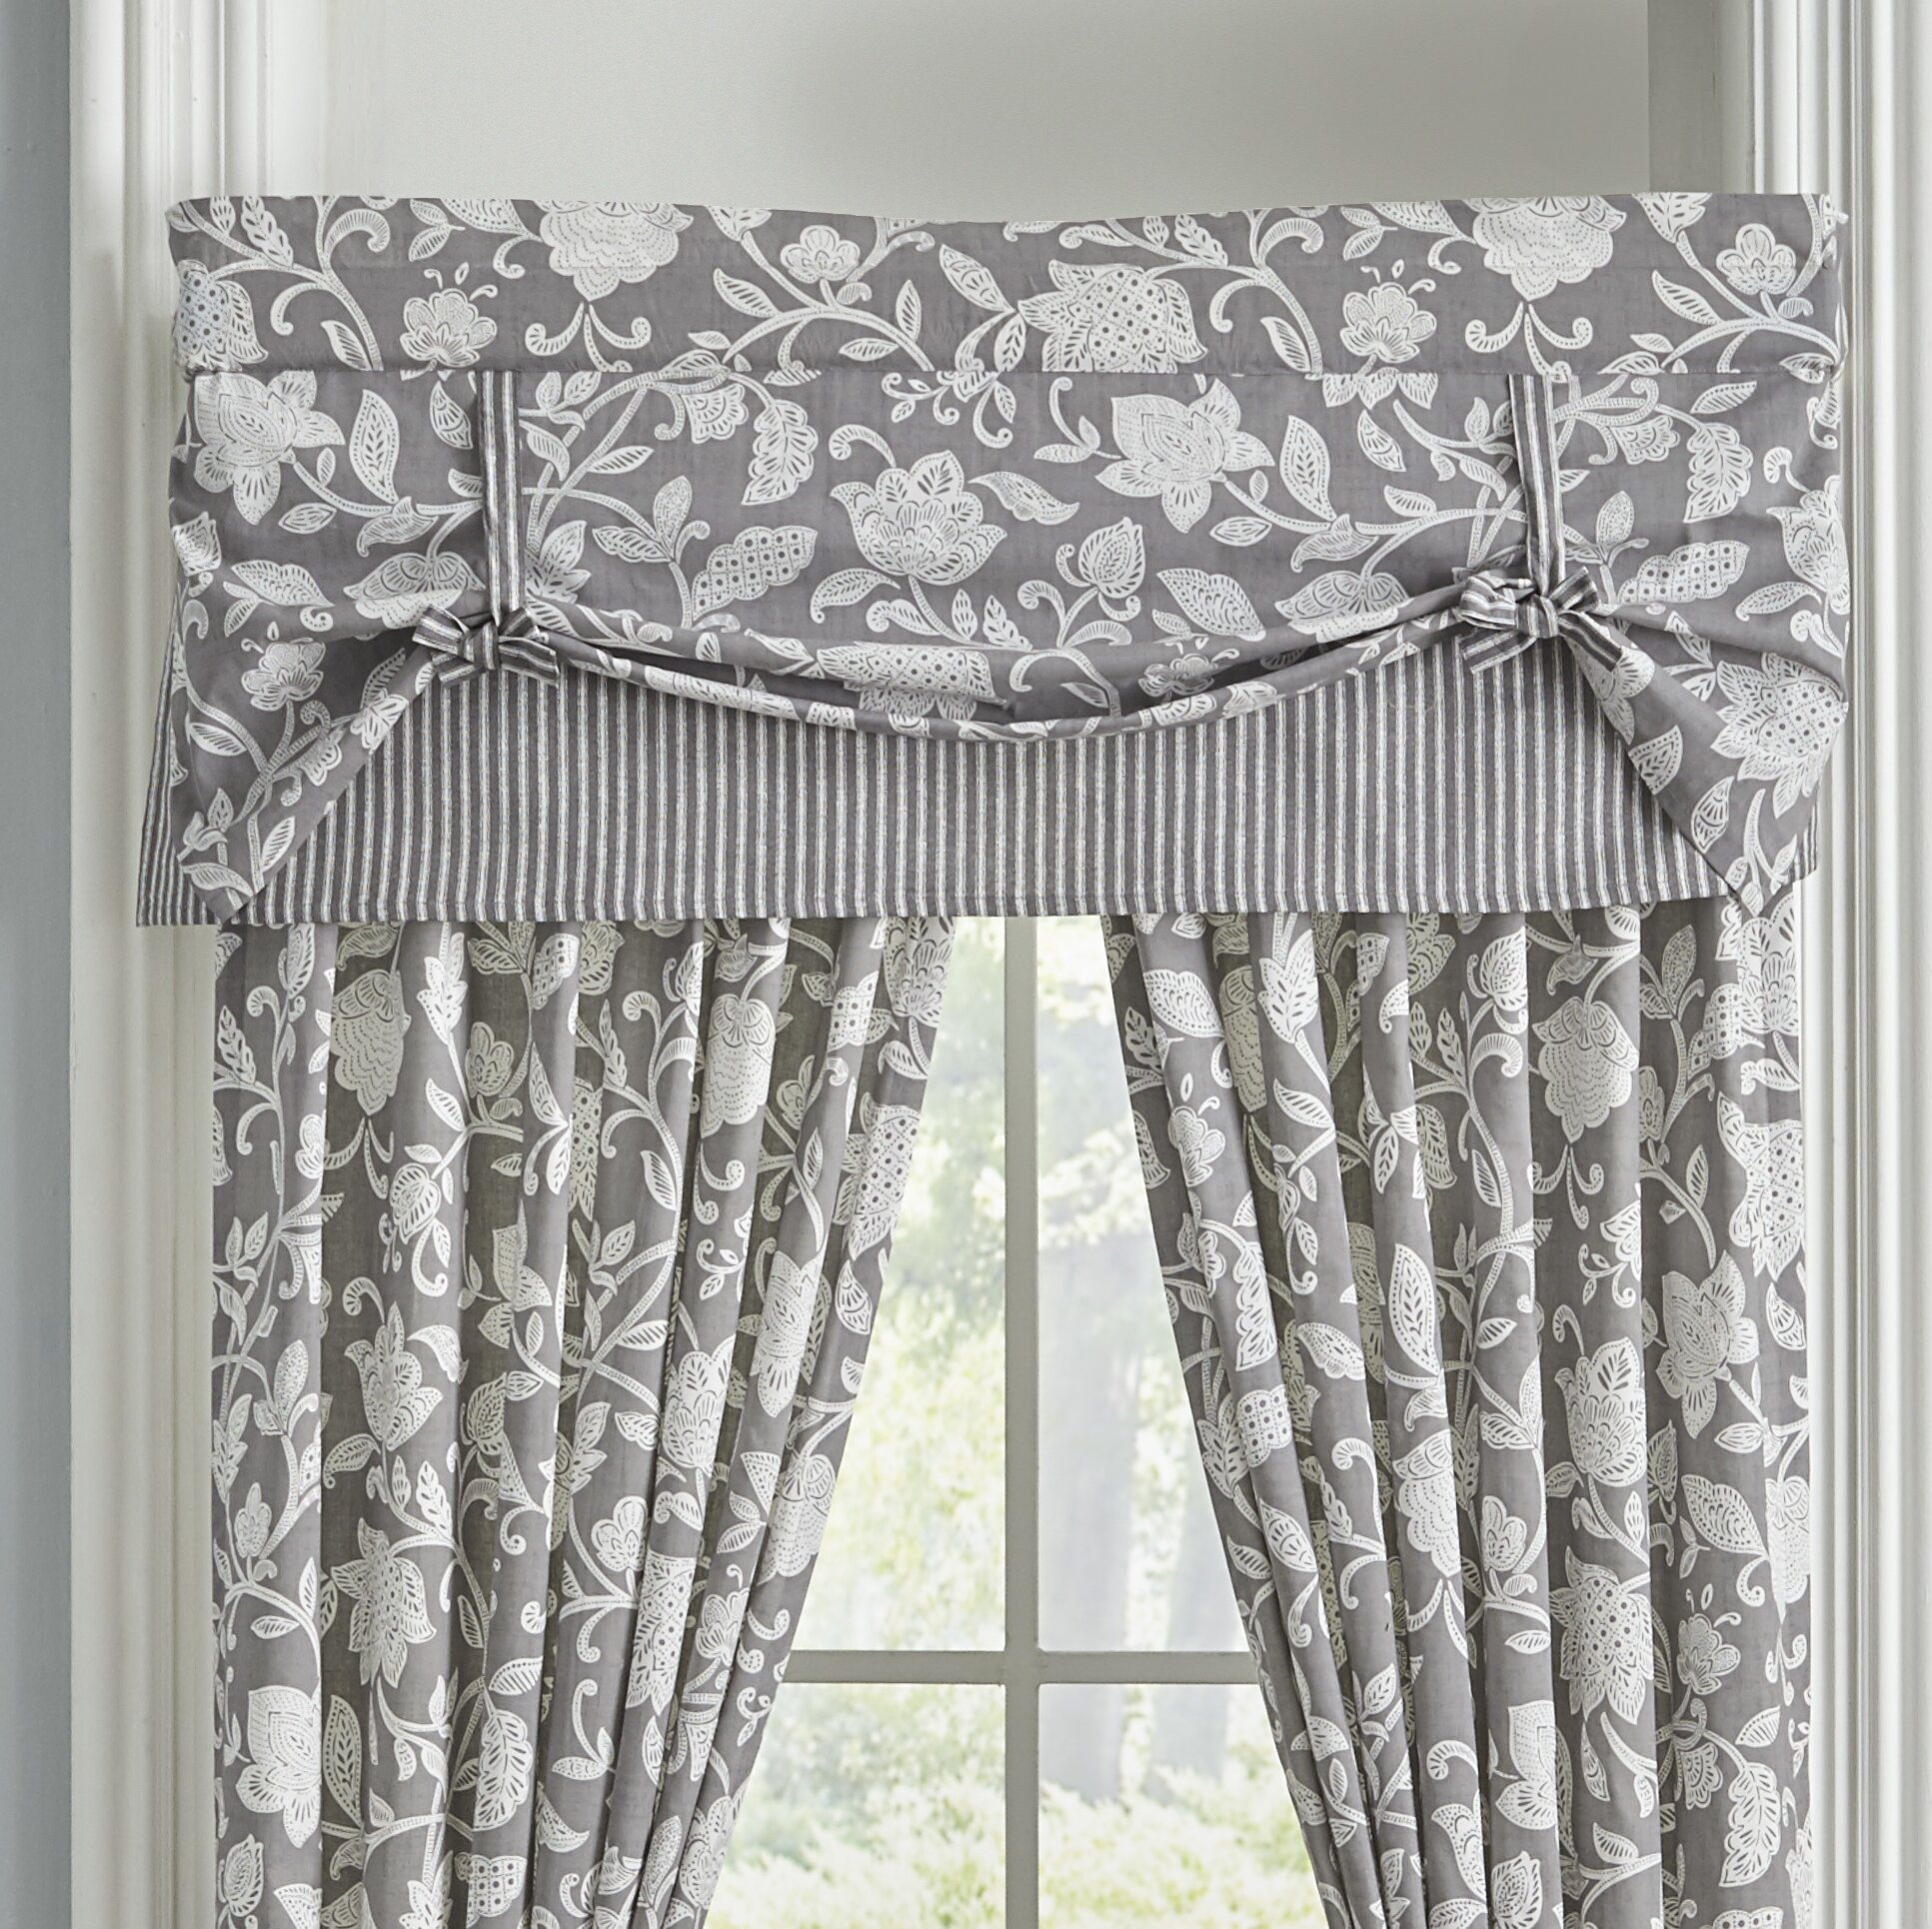 Set Of 2 Pieces Short Thermal Blackout Curtains For Small Window Wontex Kitchen Curtains Valances Beige Room Darkening Rod Pocket Cafe Curtain Panels 42 X 18 Inch Long Valences Draperies Curtains